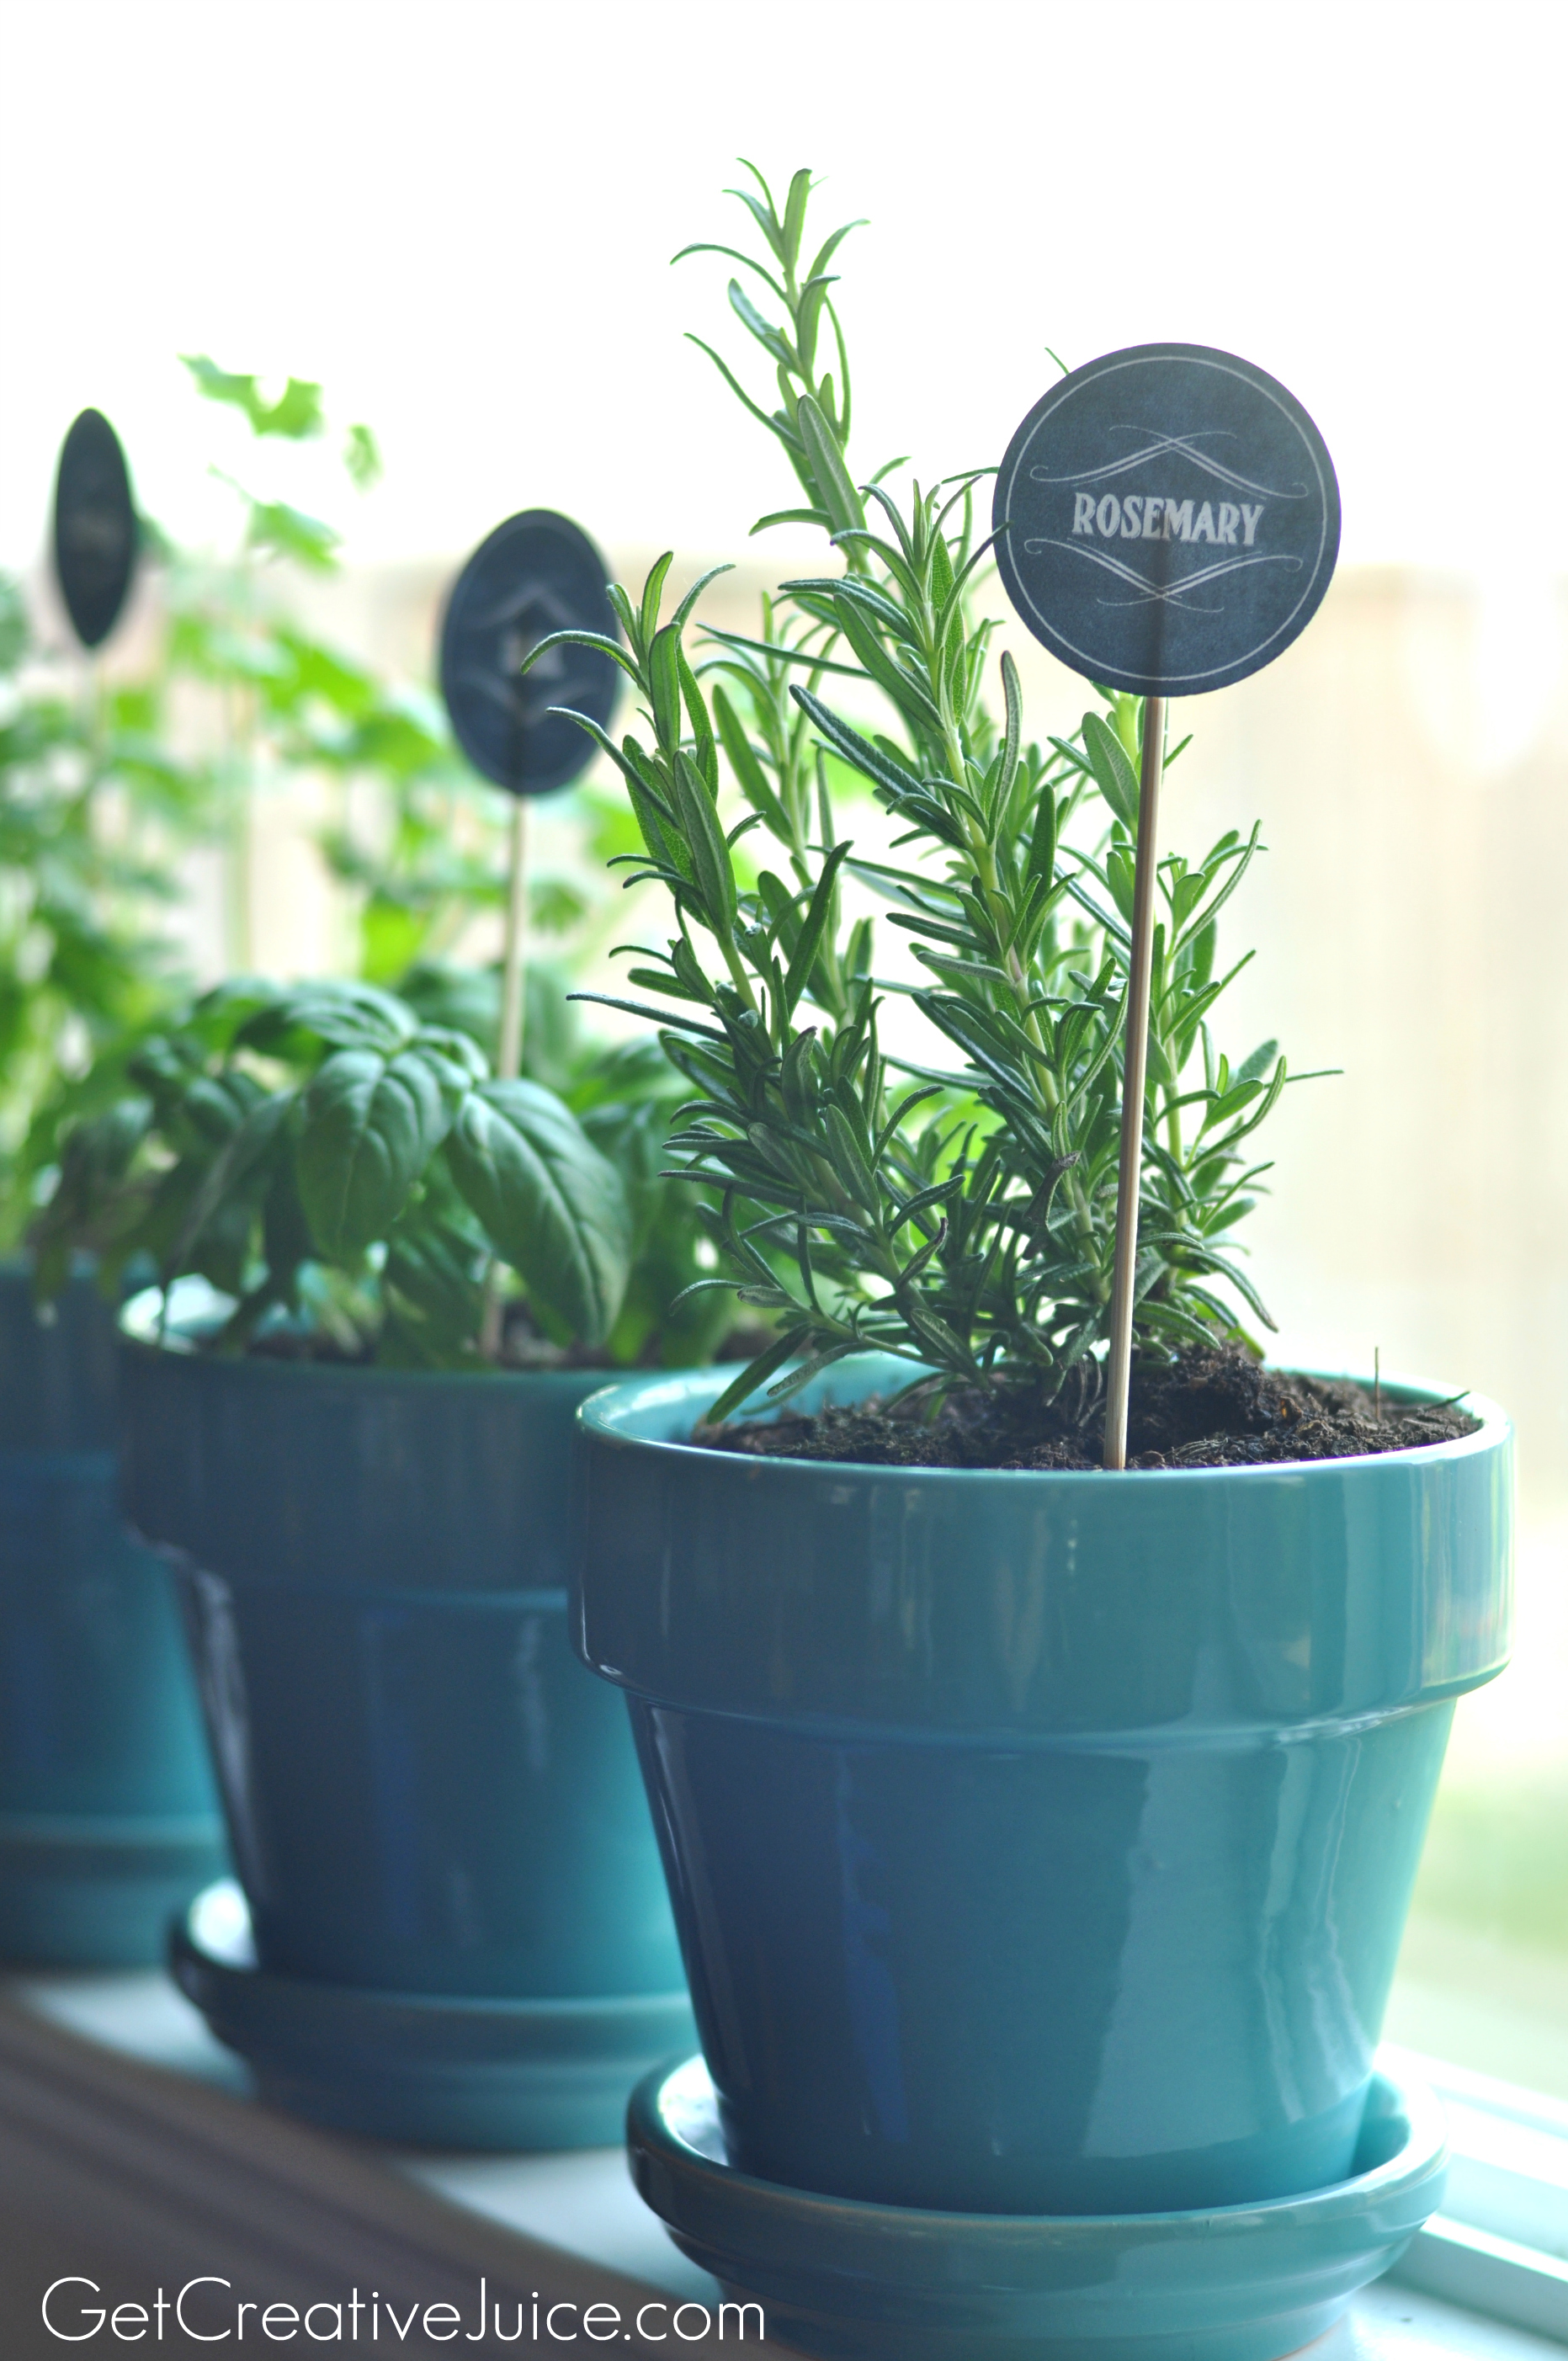 Kitchen Window Garden Tips And Tricks To Maintaining An Indoor Kitchen Herb Garden